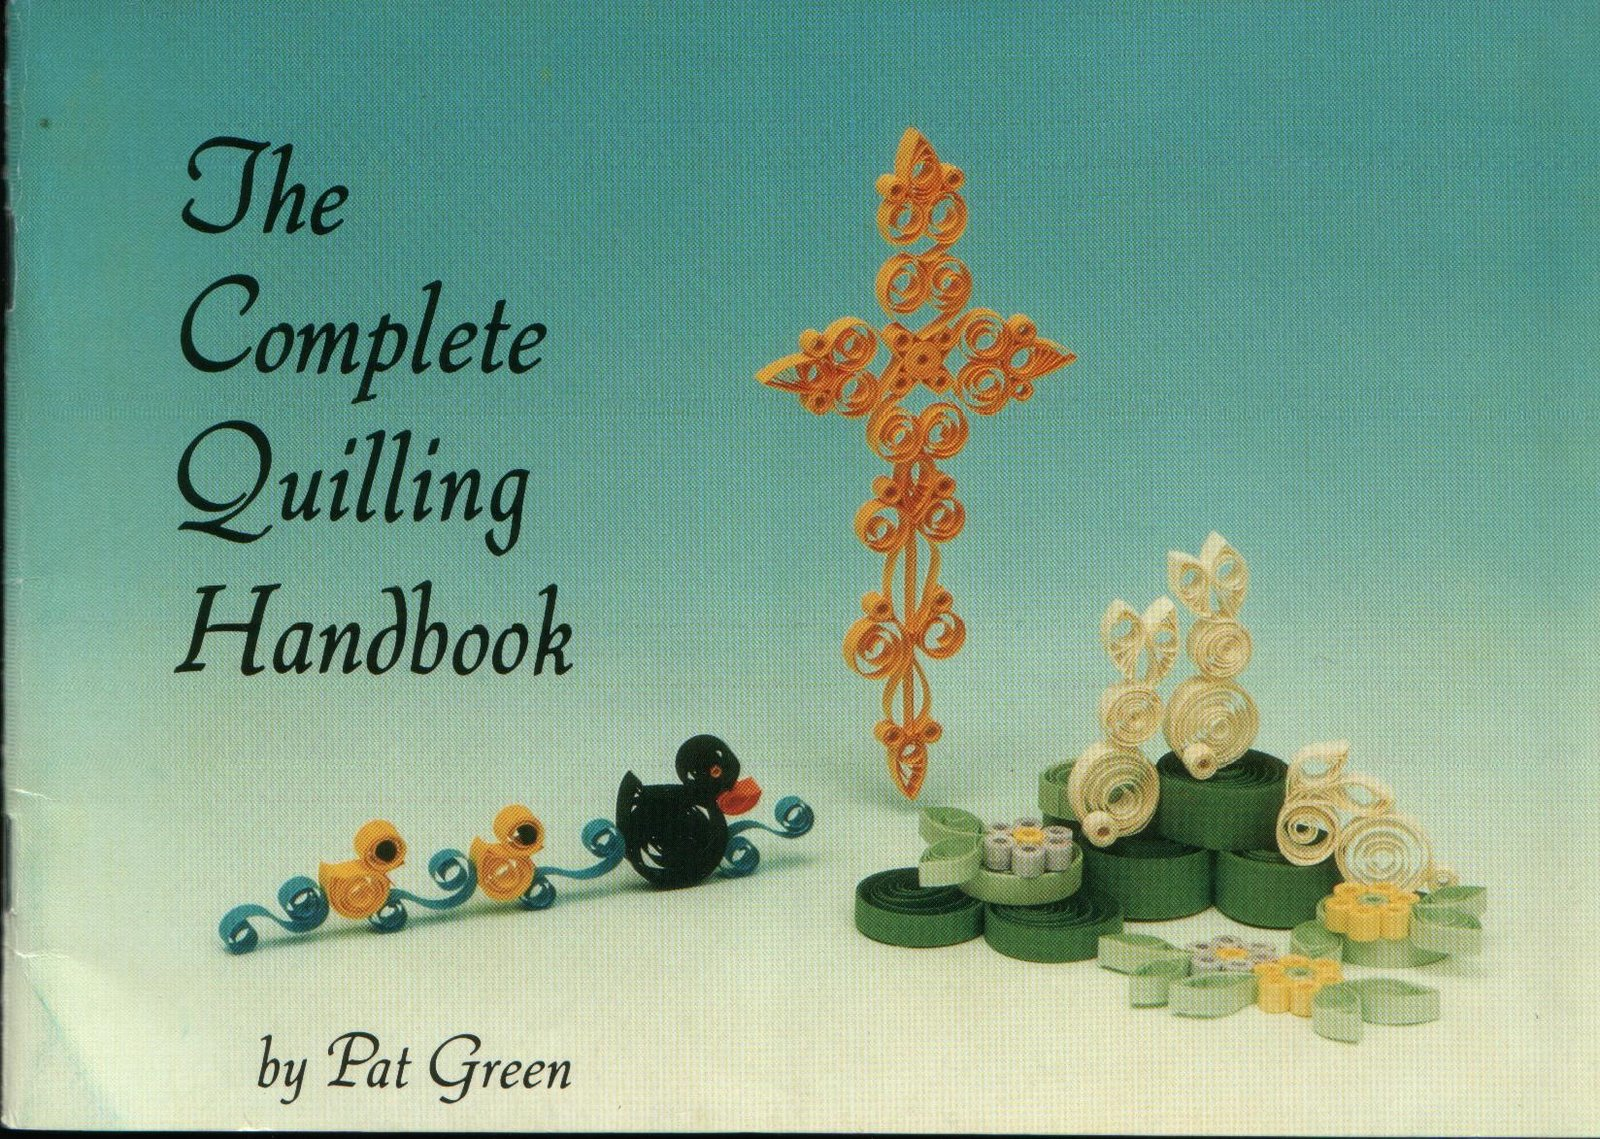 The Complete Quilling Handbook